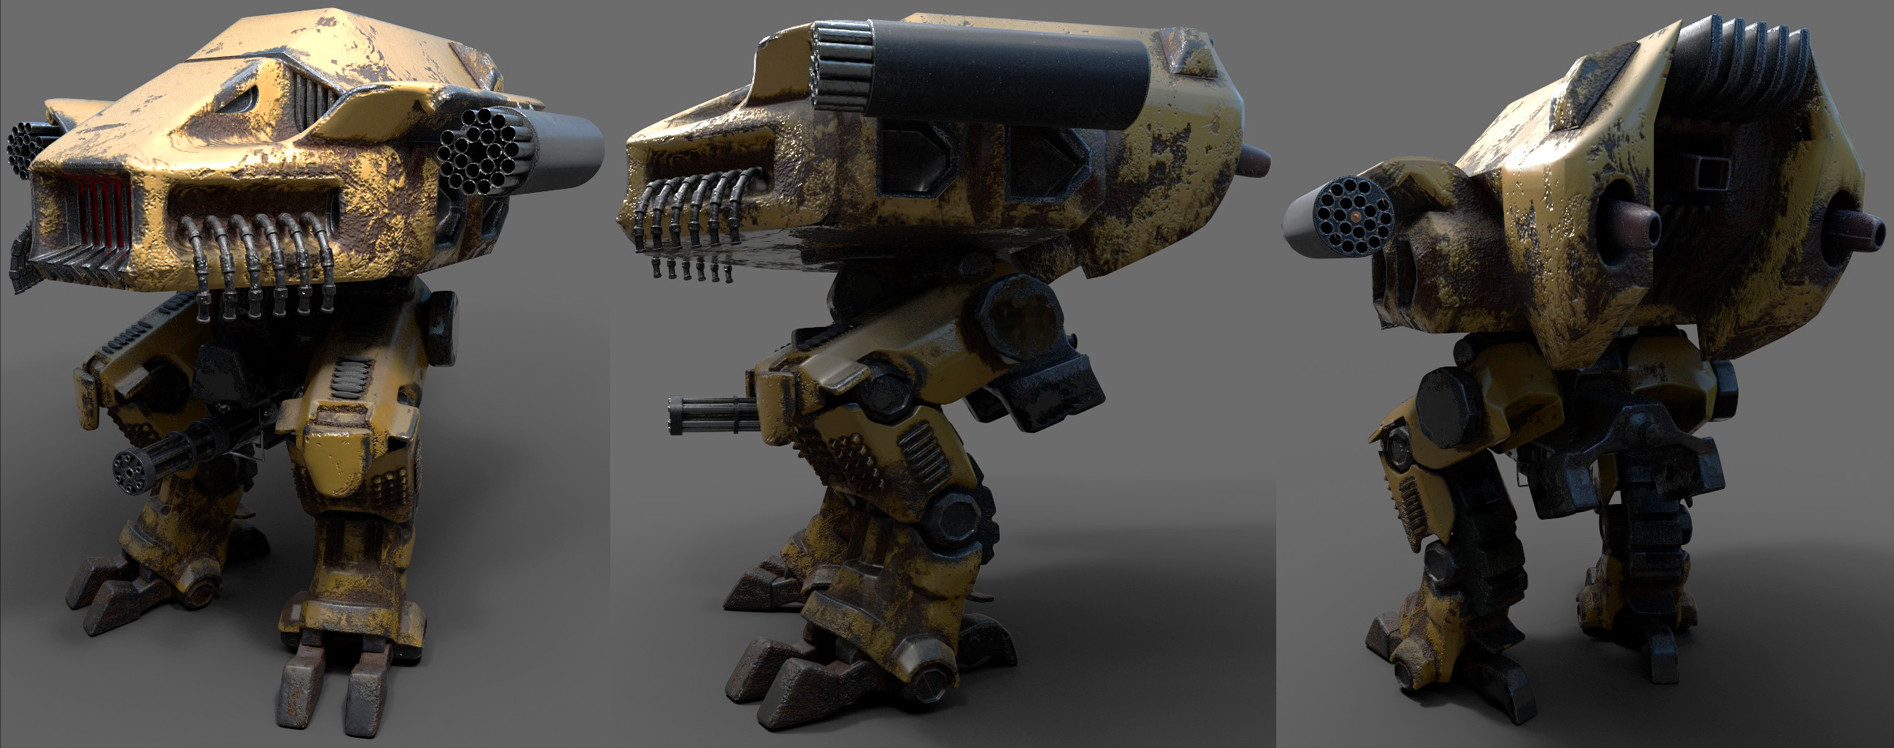 Josh mccann mech together